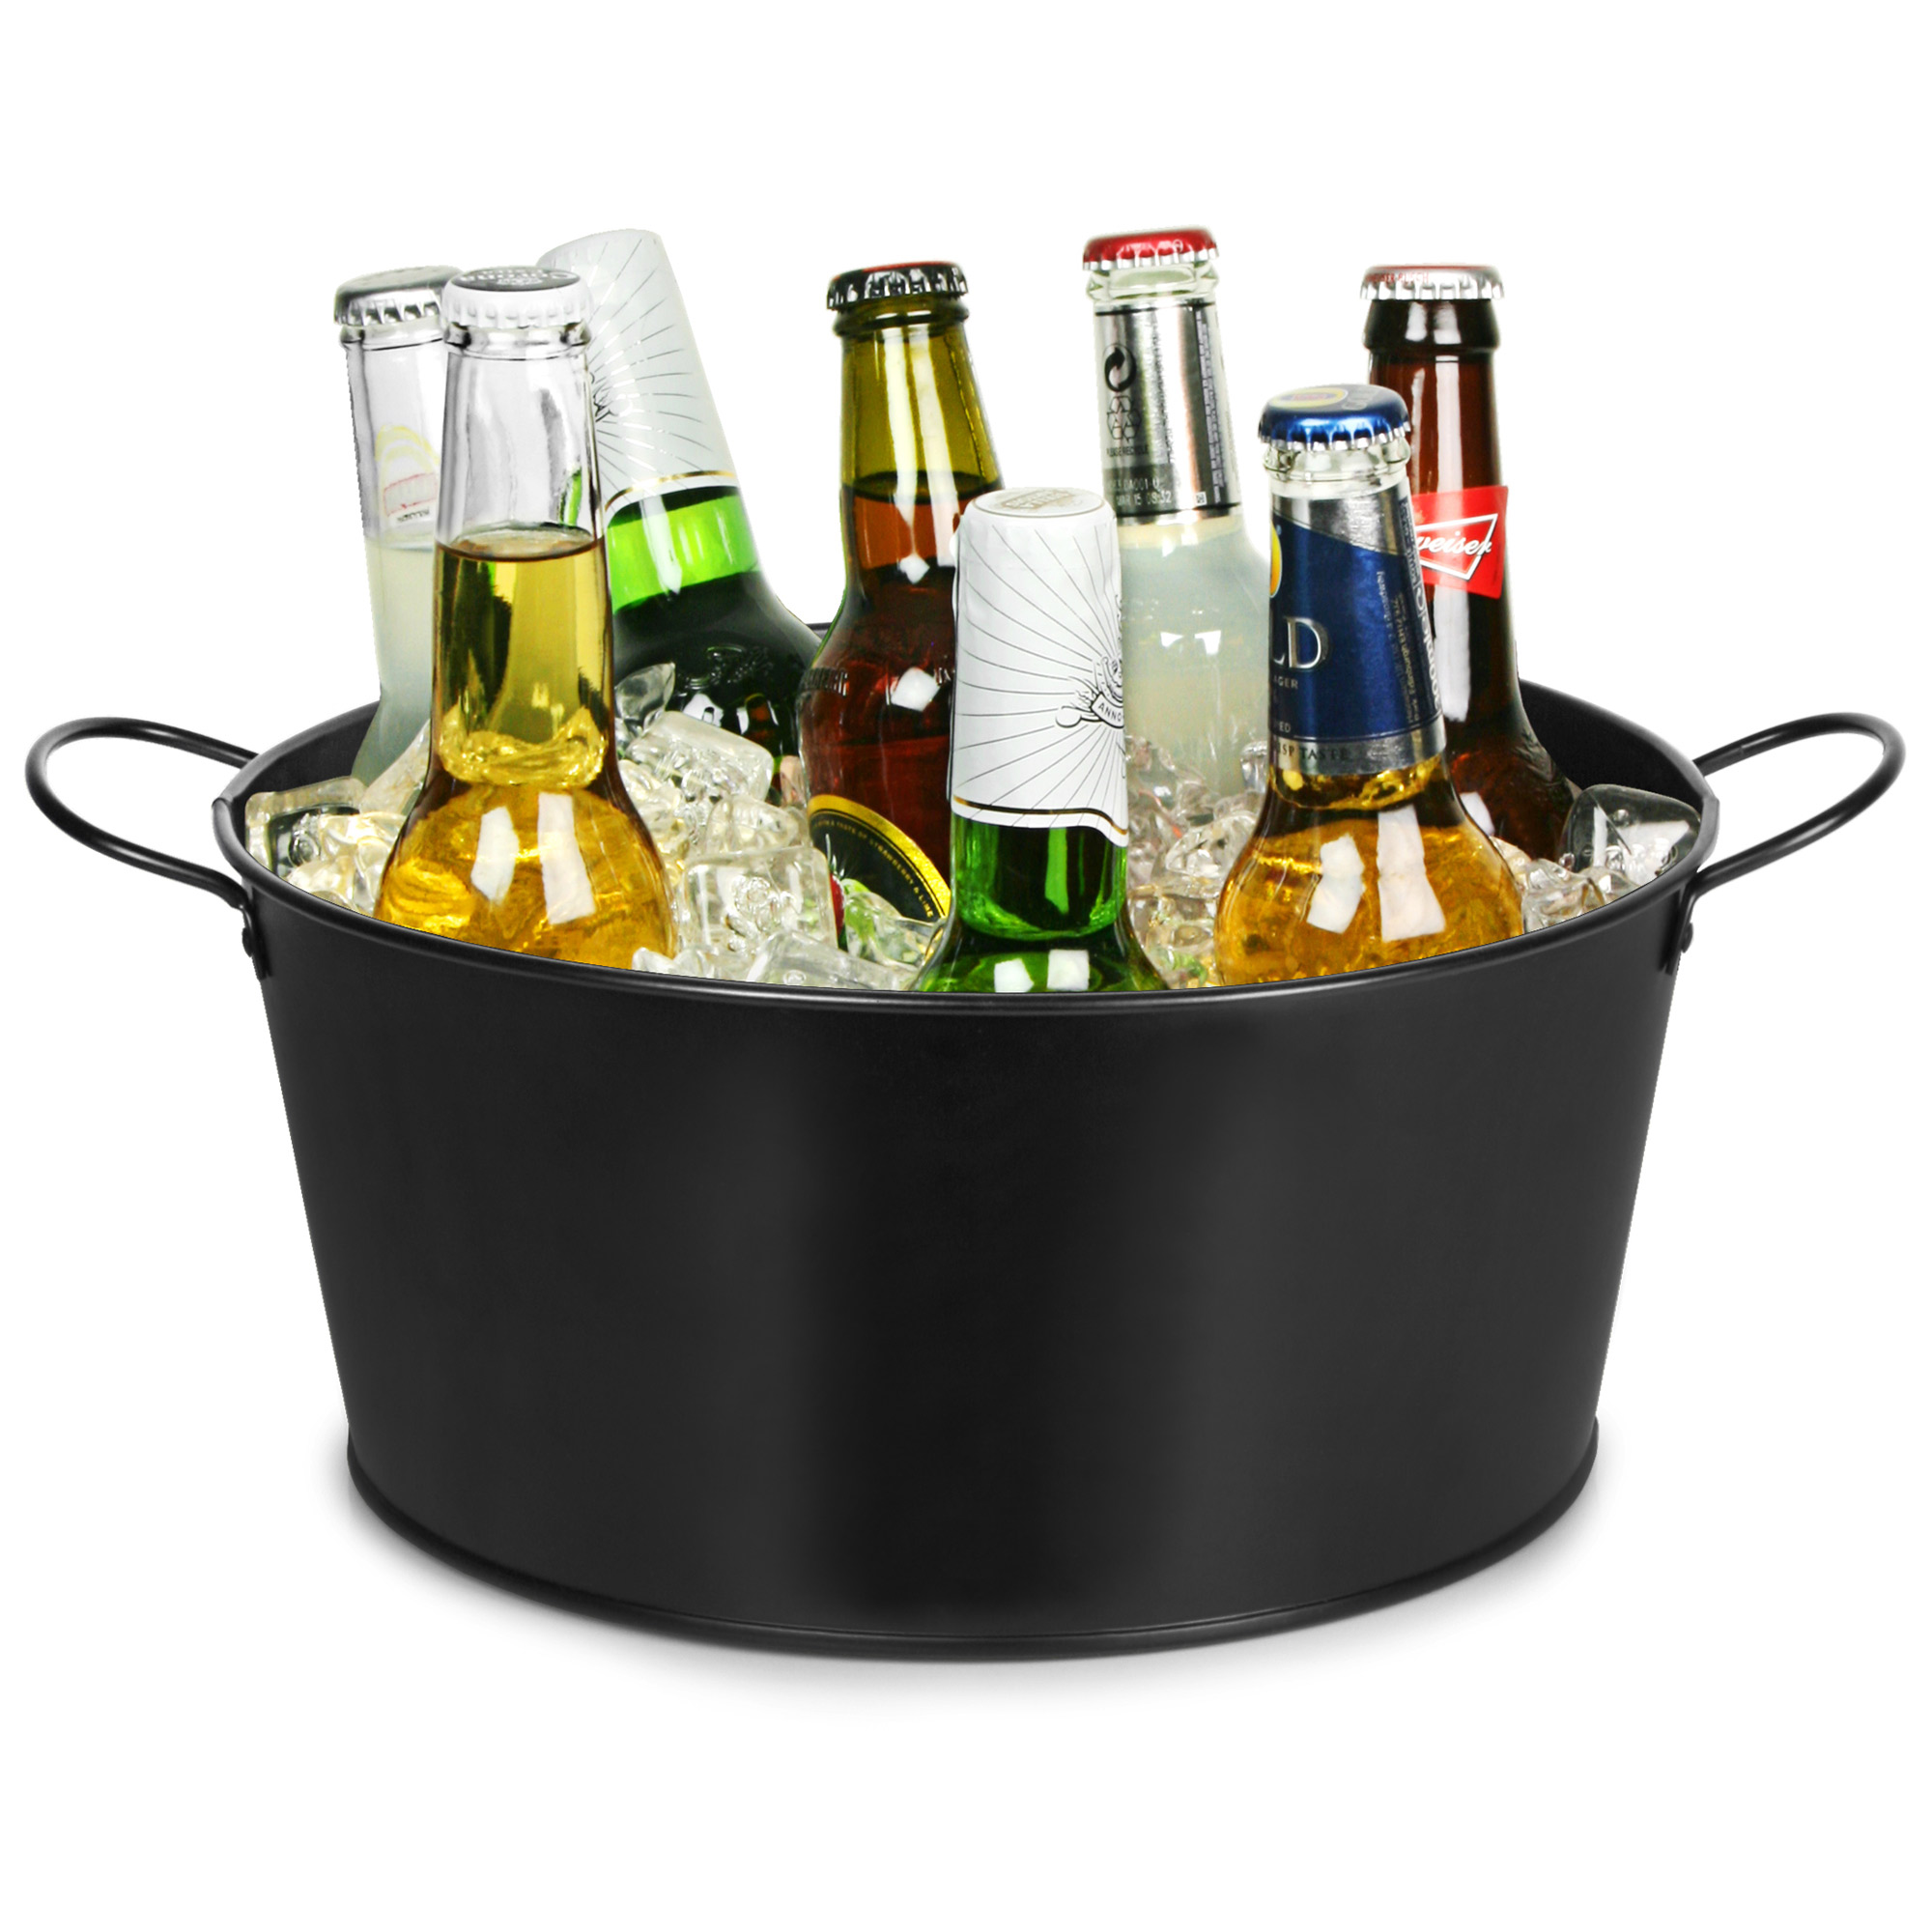 pinterest jack creighton bucket ice tub wine buckets pebbled best wong beverage on images party beverages